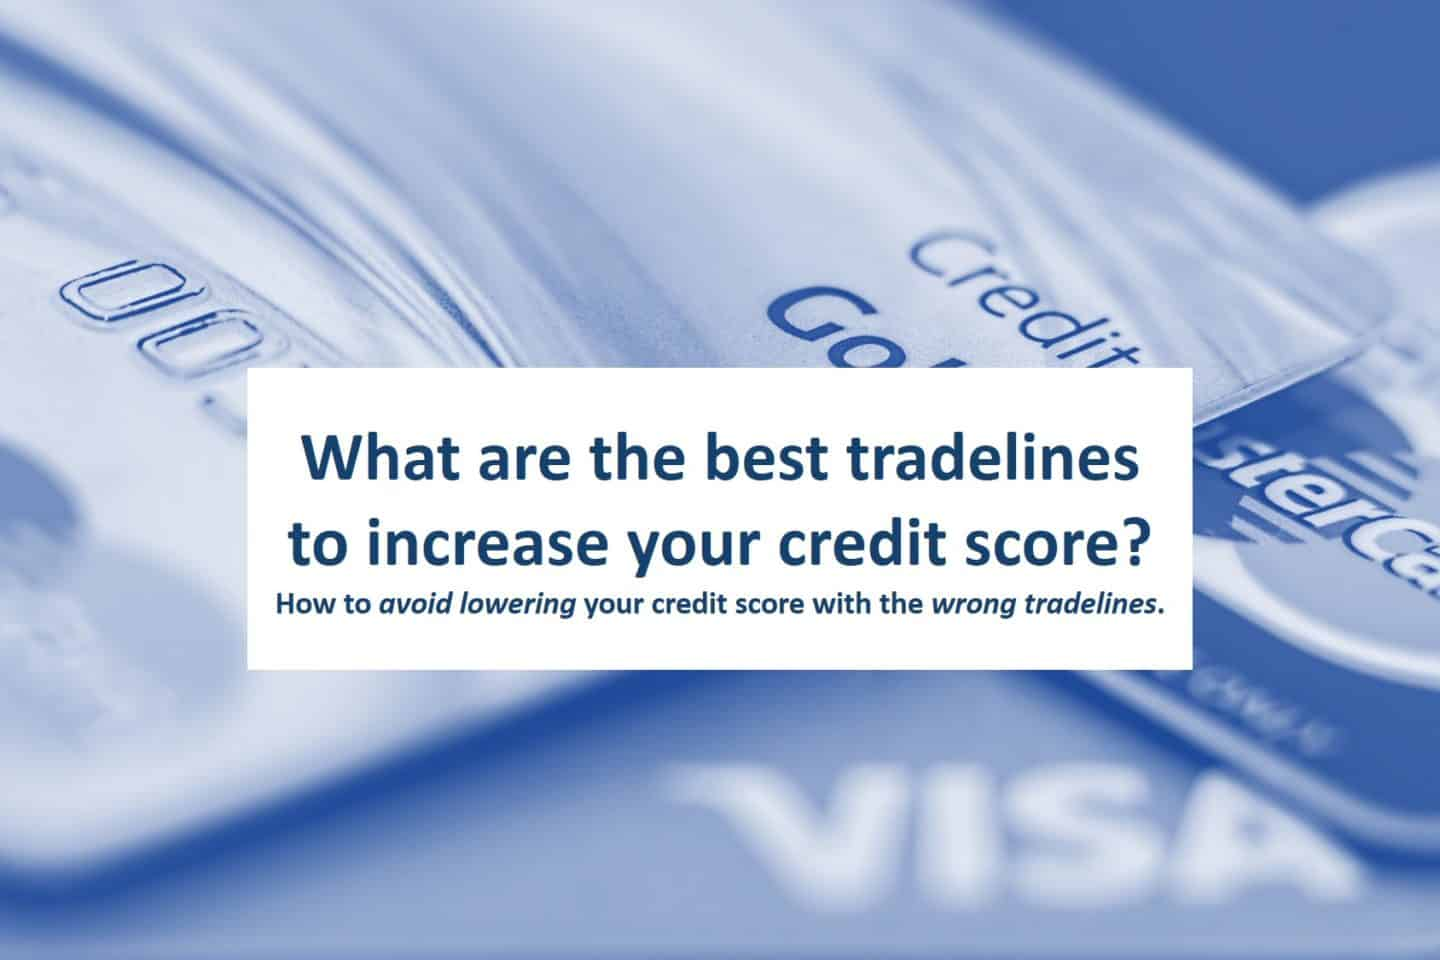 How to avoid lowering your credit score with the wrong tradelines.